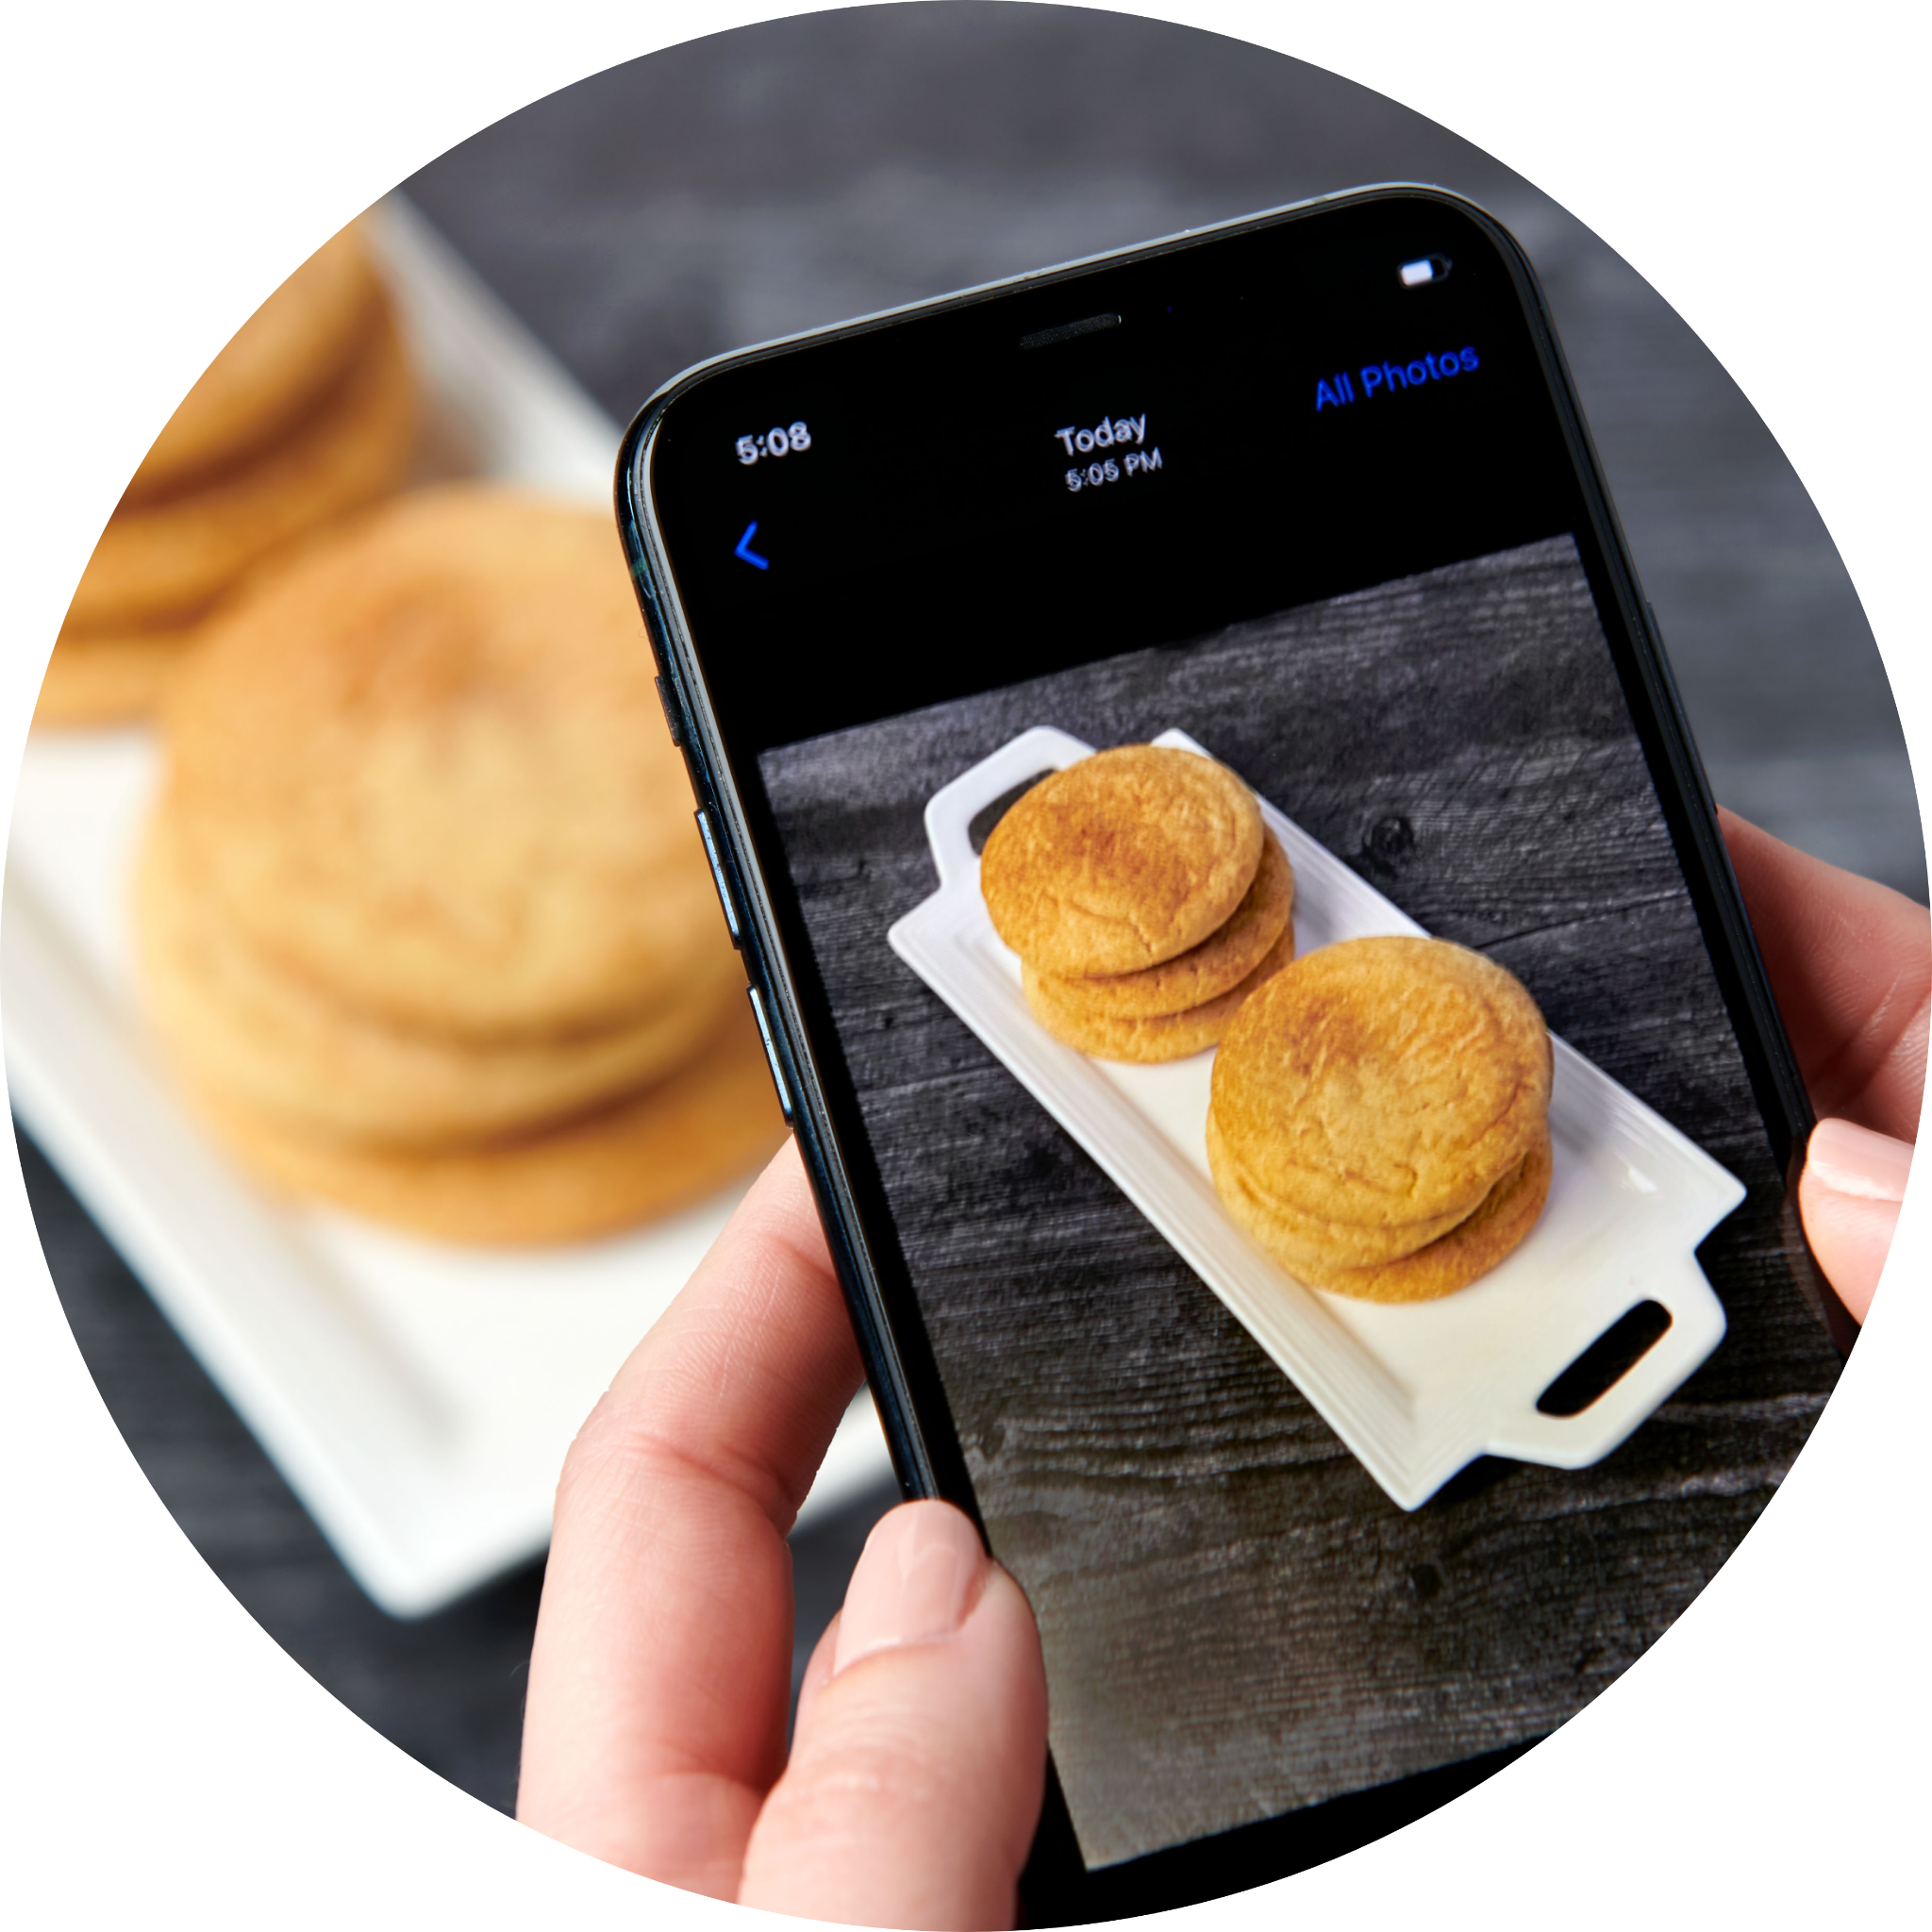 Snickerdoodle On Hover Image